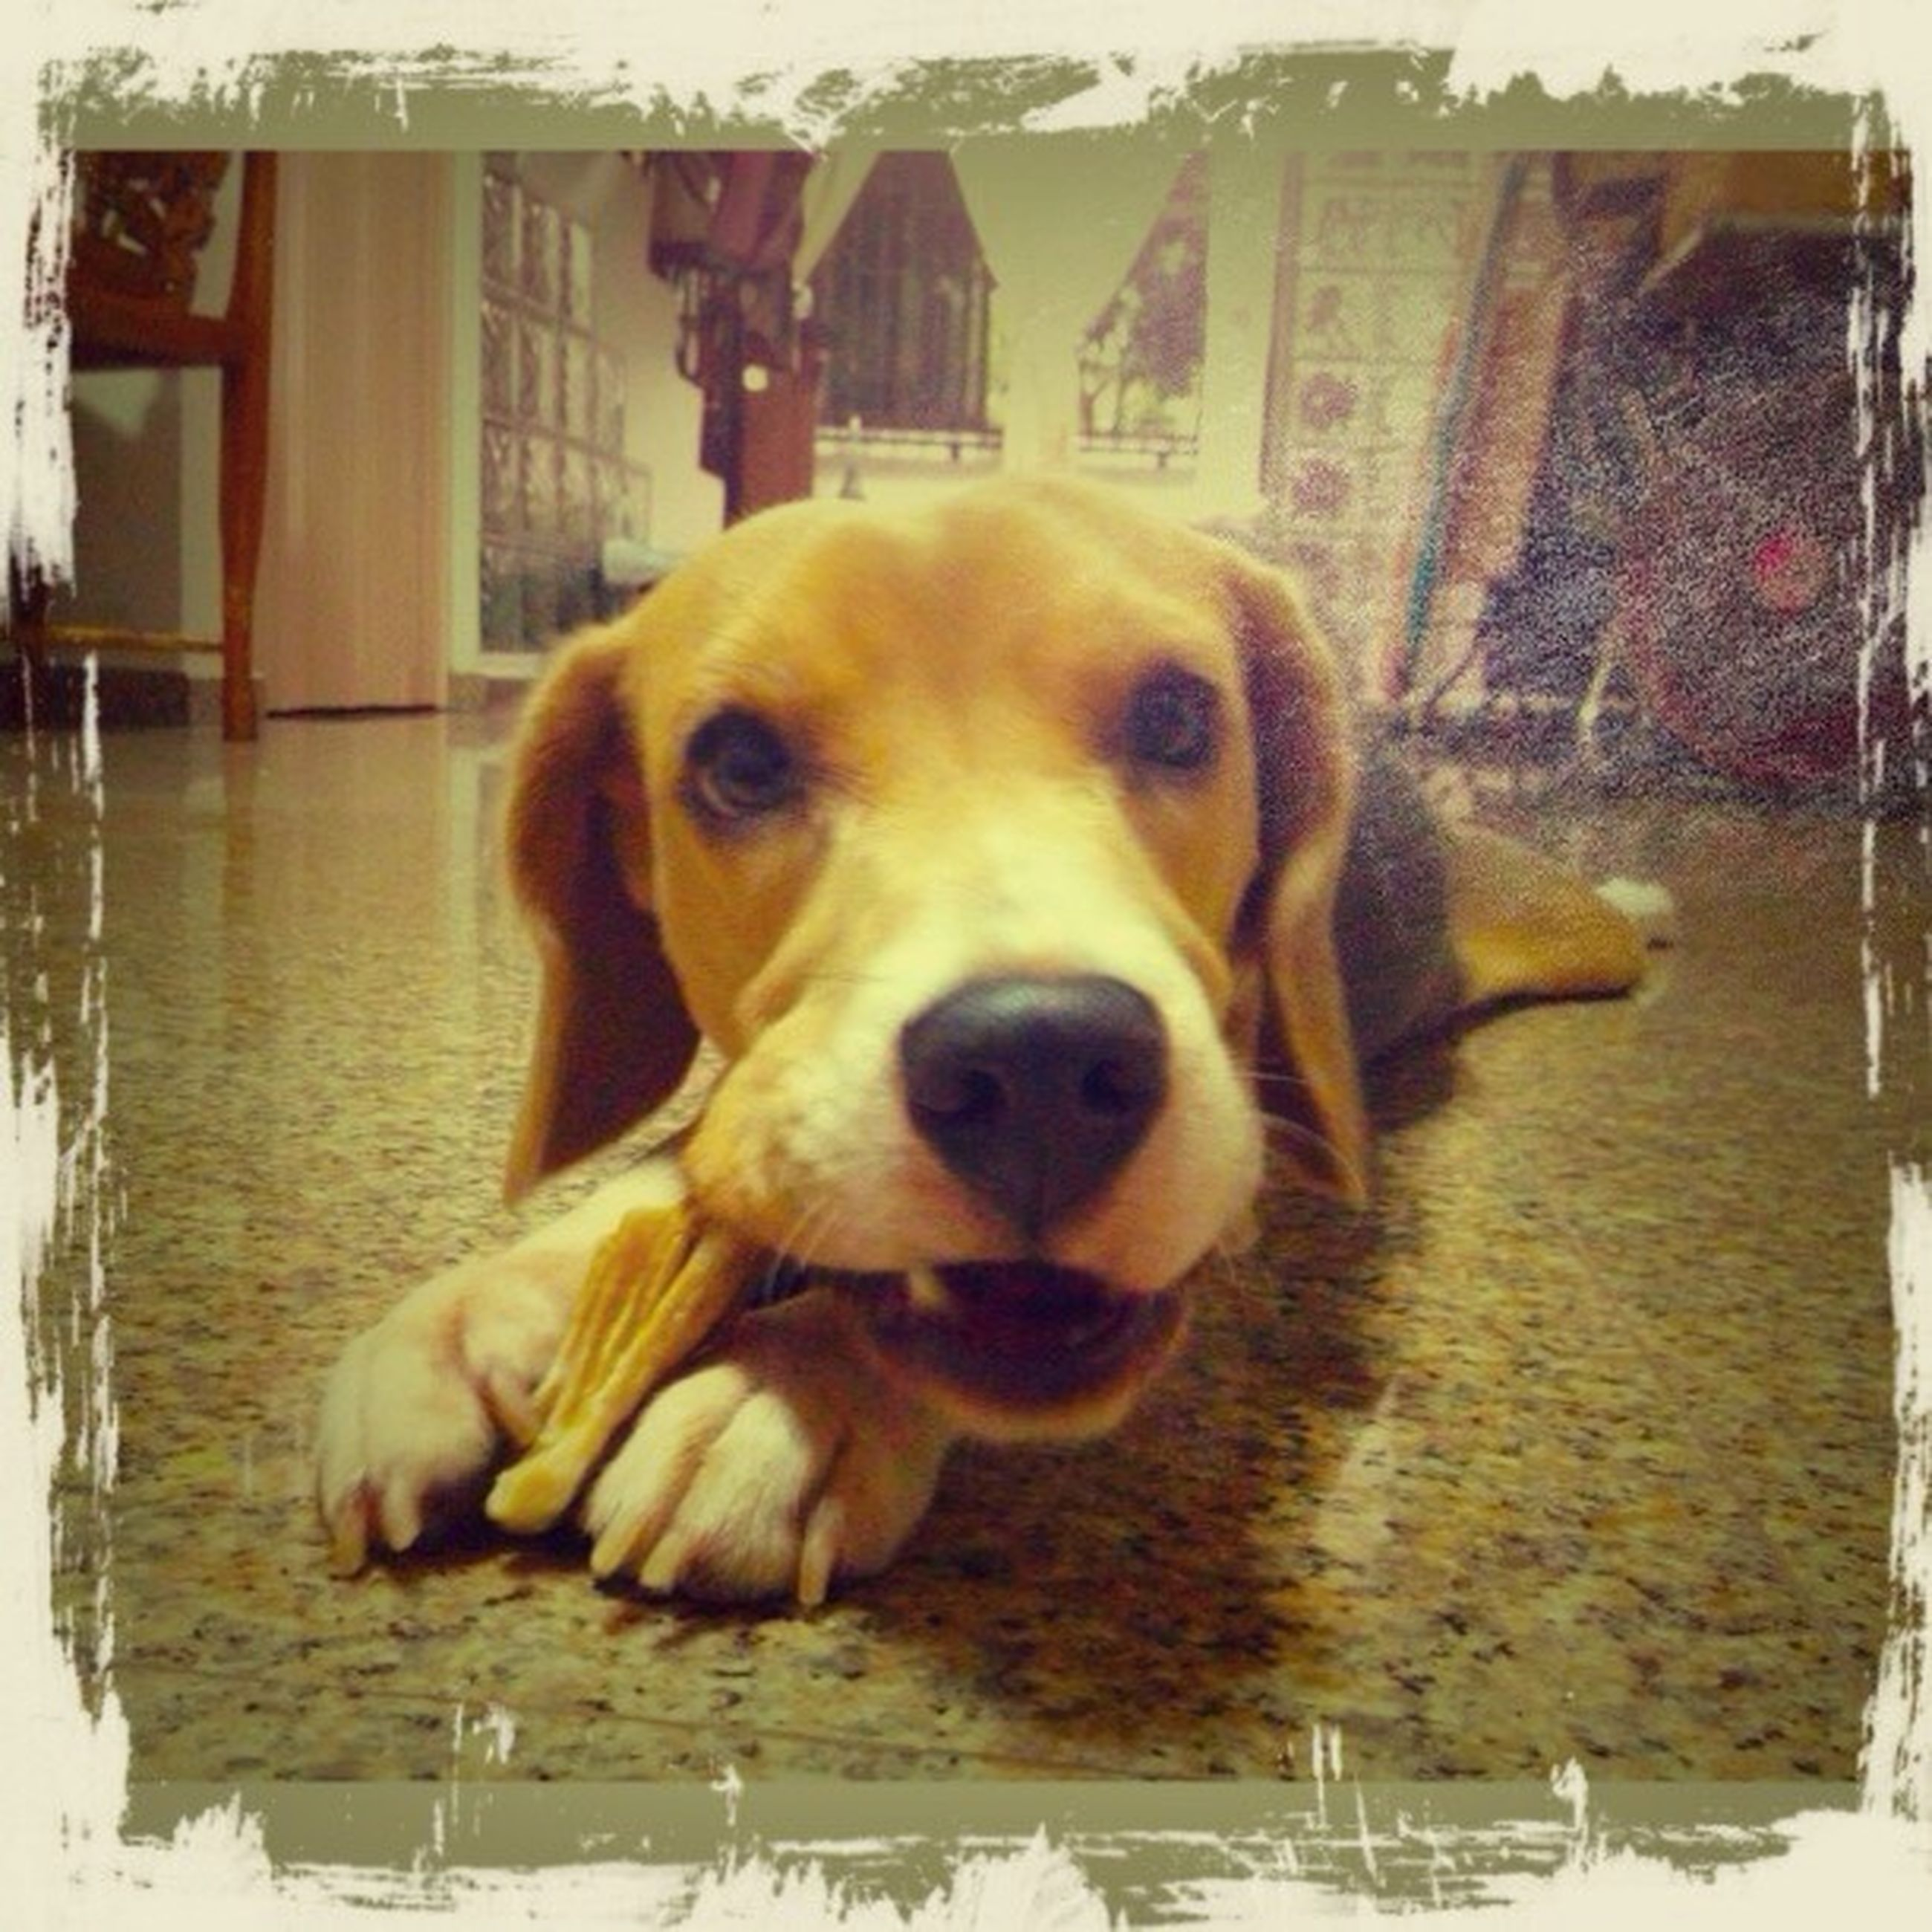 dog, pets, domestic animals, animal themes, one animal, mammal, indoors, relaxation, portrait, looking at camera, sitting, resting, auto post production filter, transfer print, no people, lying down, close-up, day, table, puppy